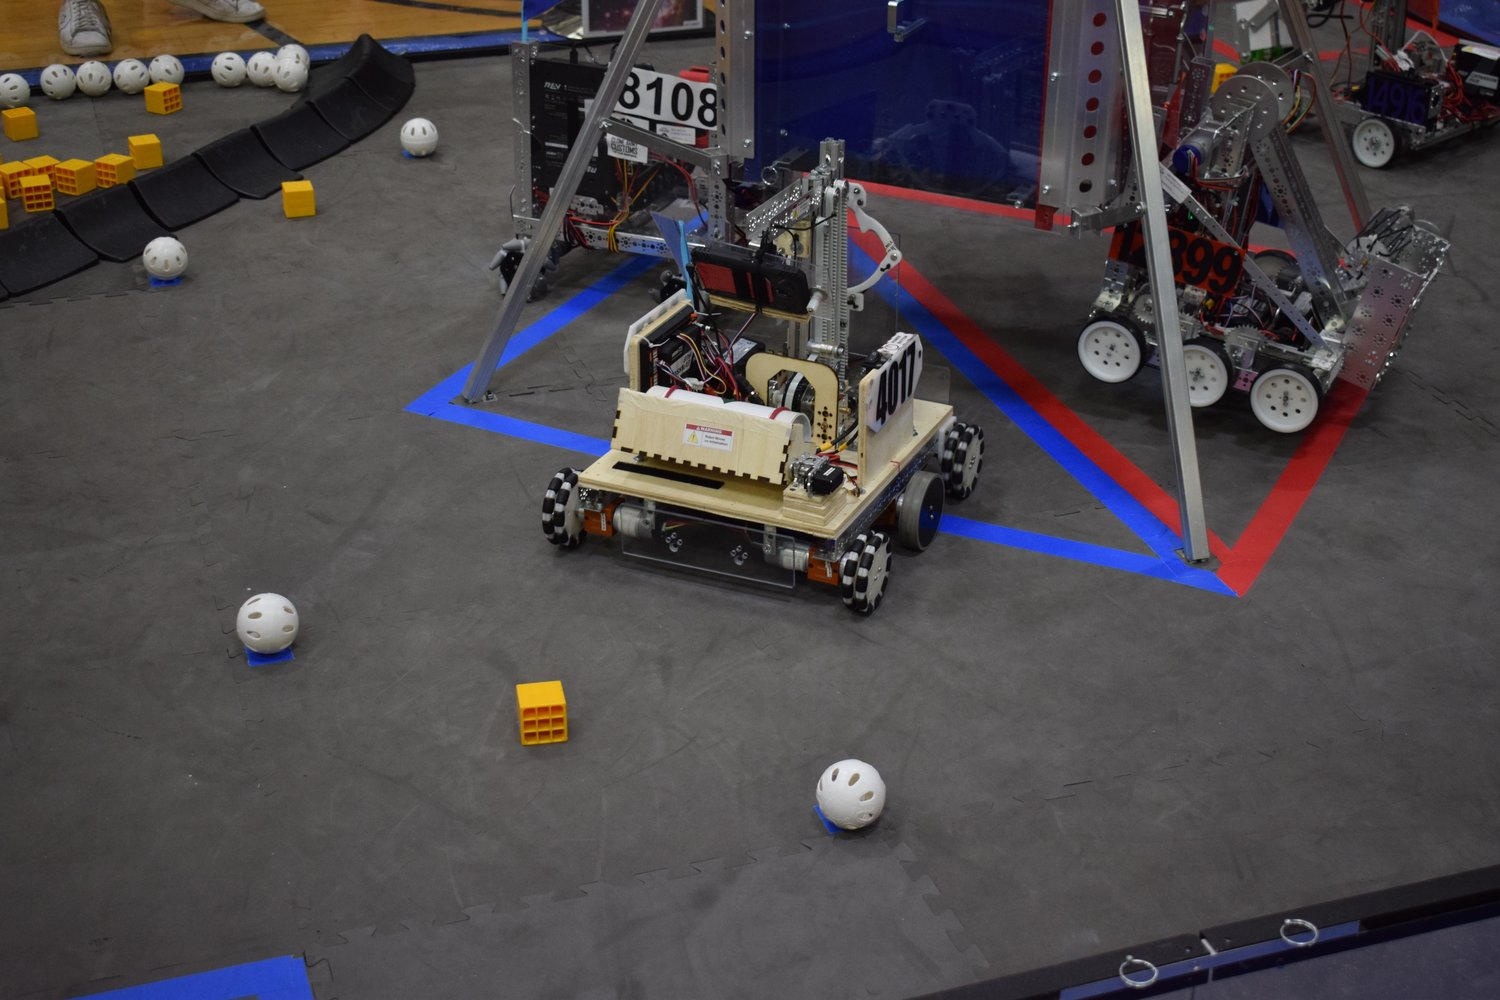 Using its pre-programmed code, the Sewanhaka RoboPandas' robot lowered itself from its lander and began scanning its target during the Autonomous Period of the course.